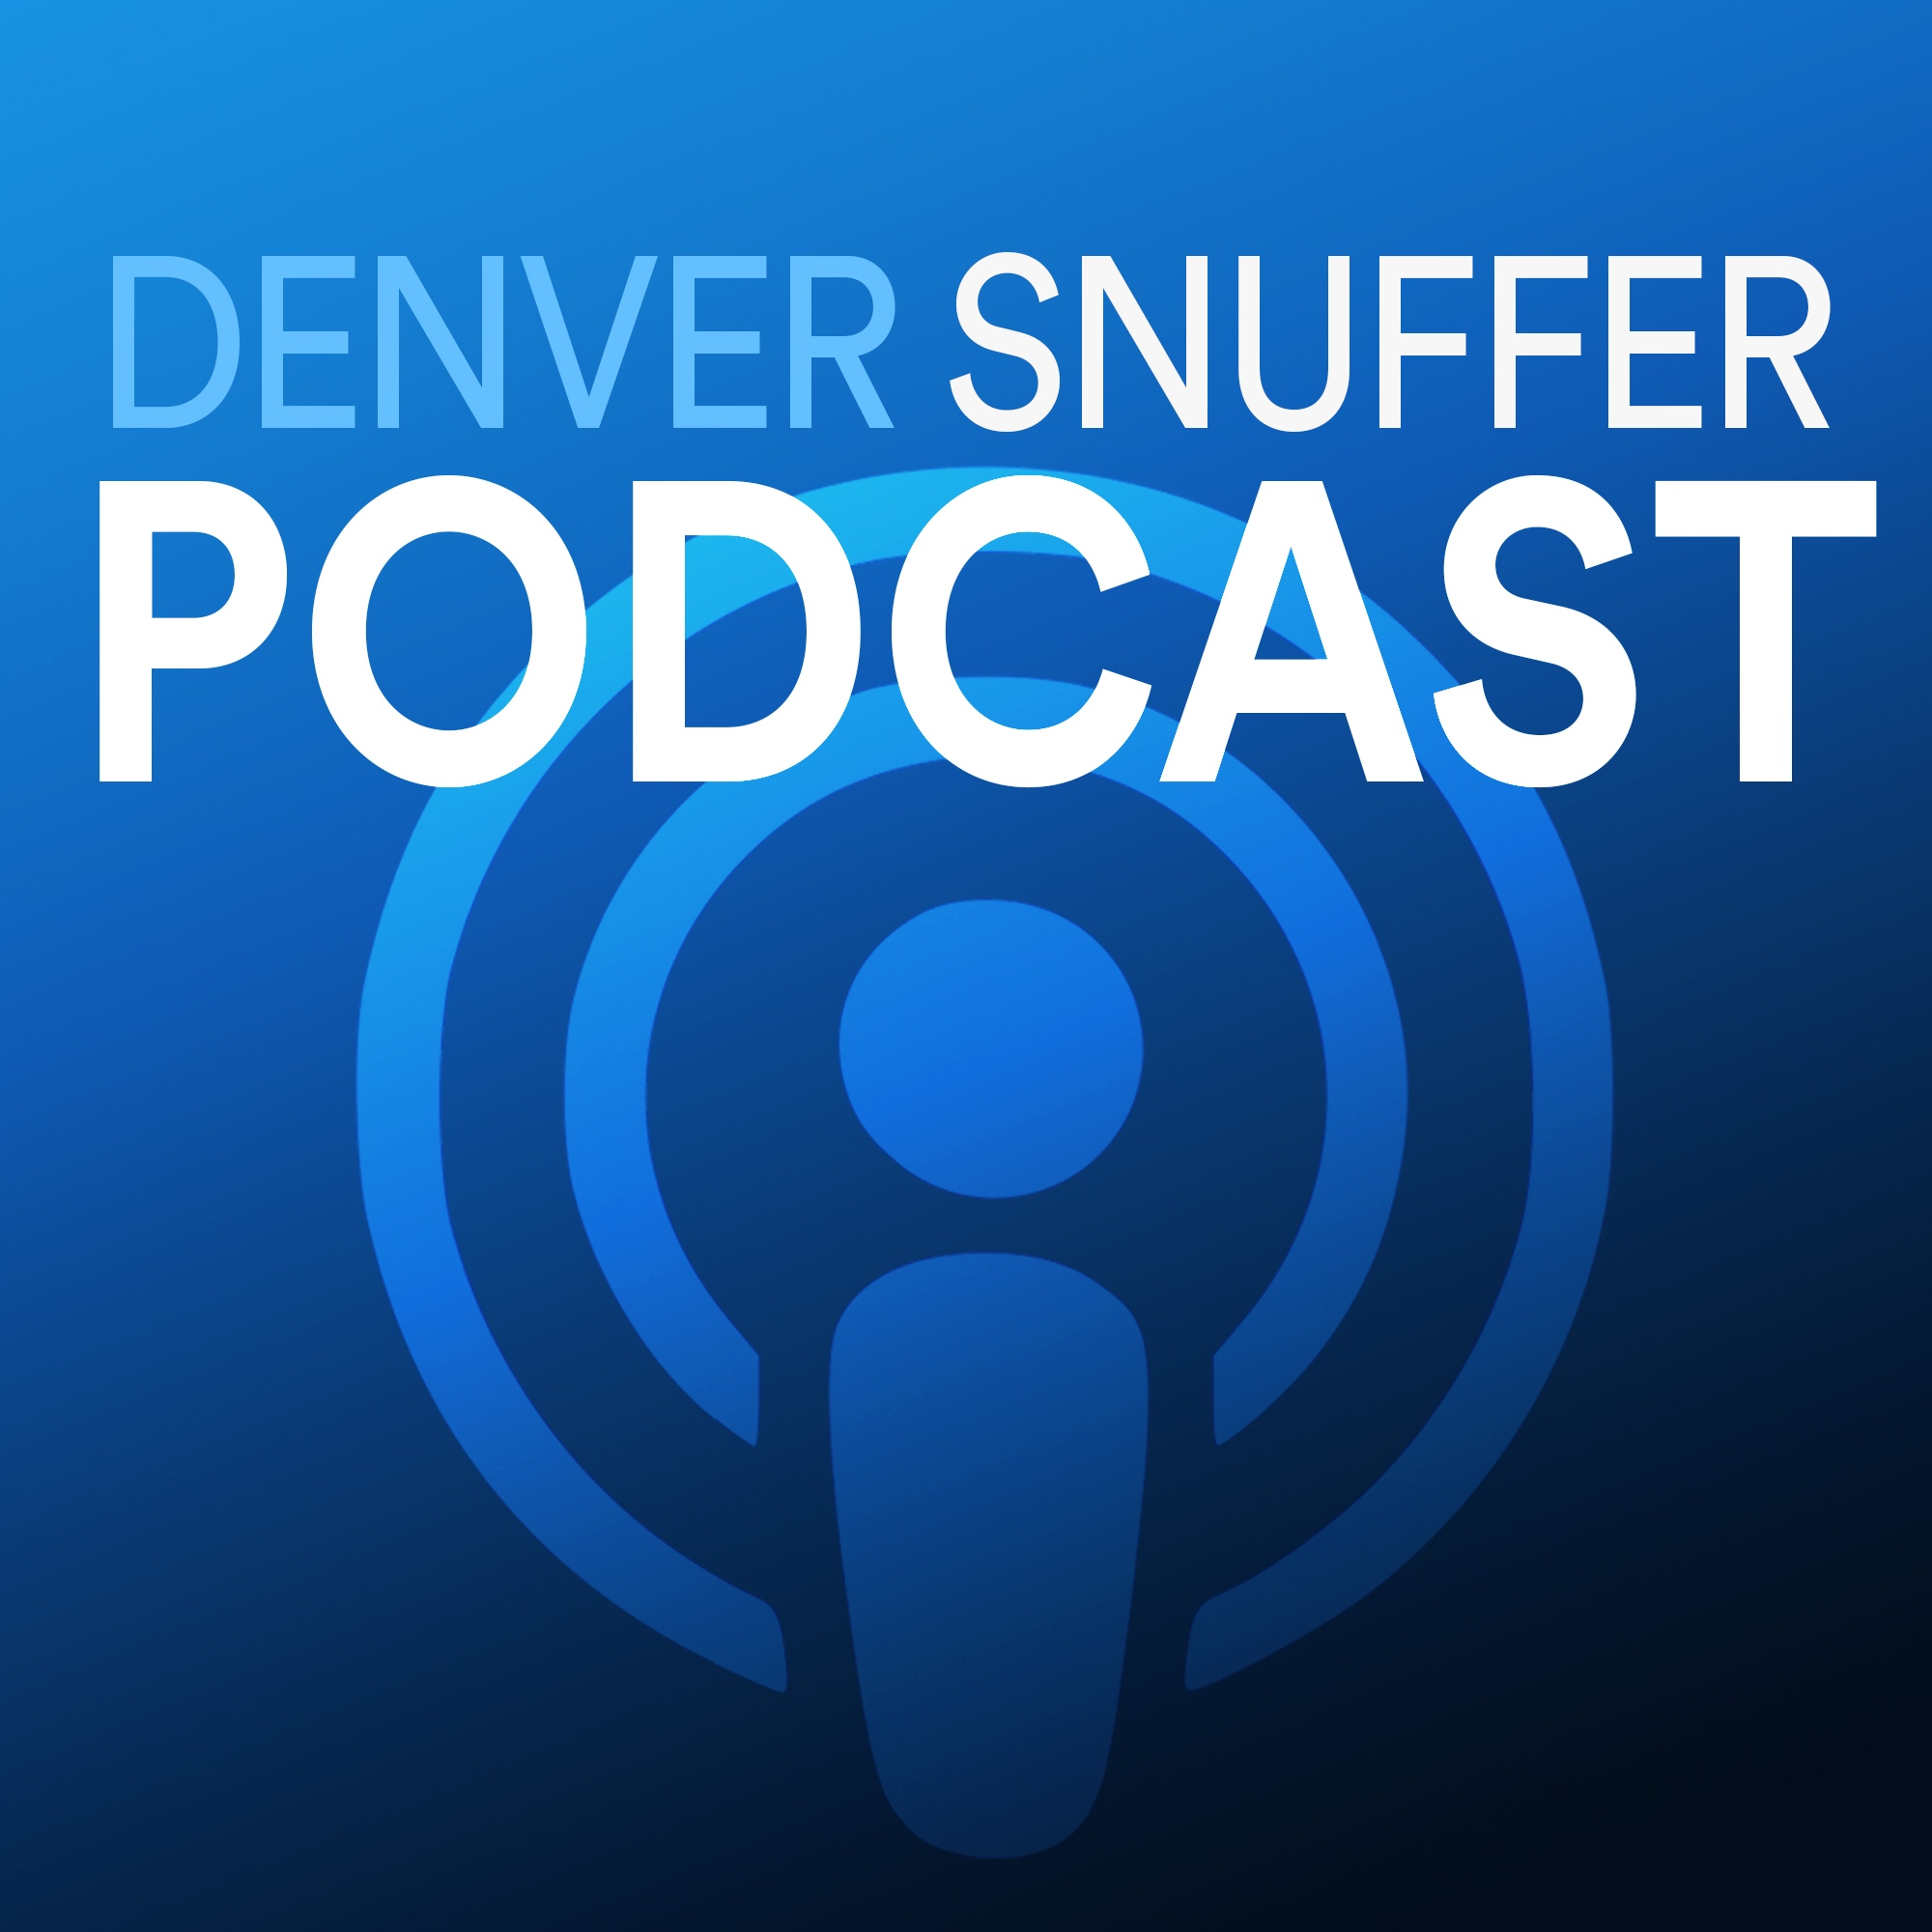 Denver Snuffer Podcast